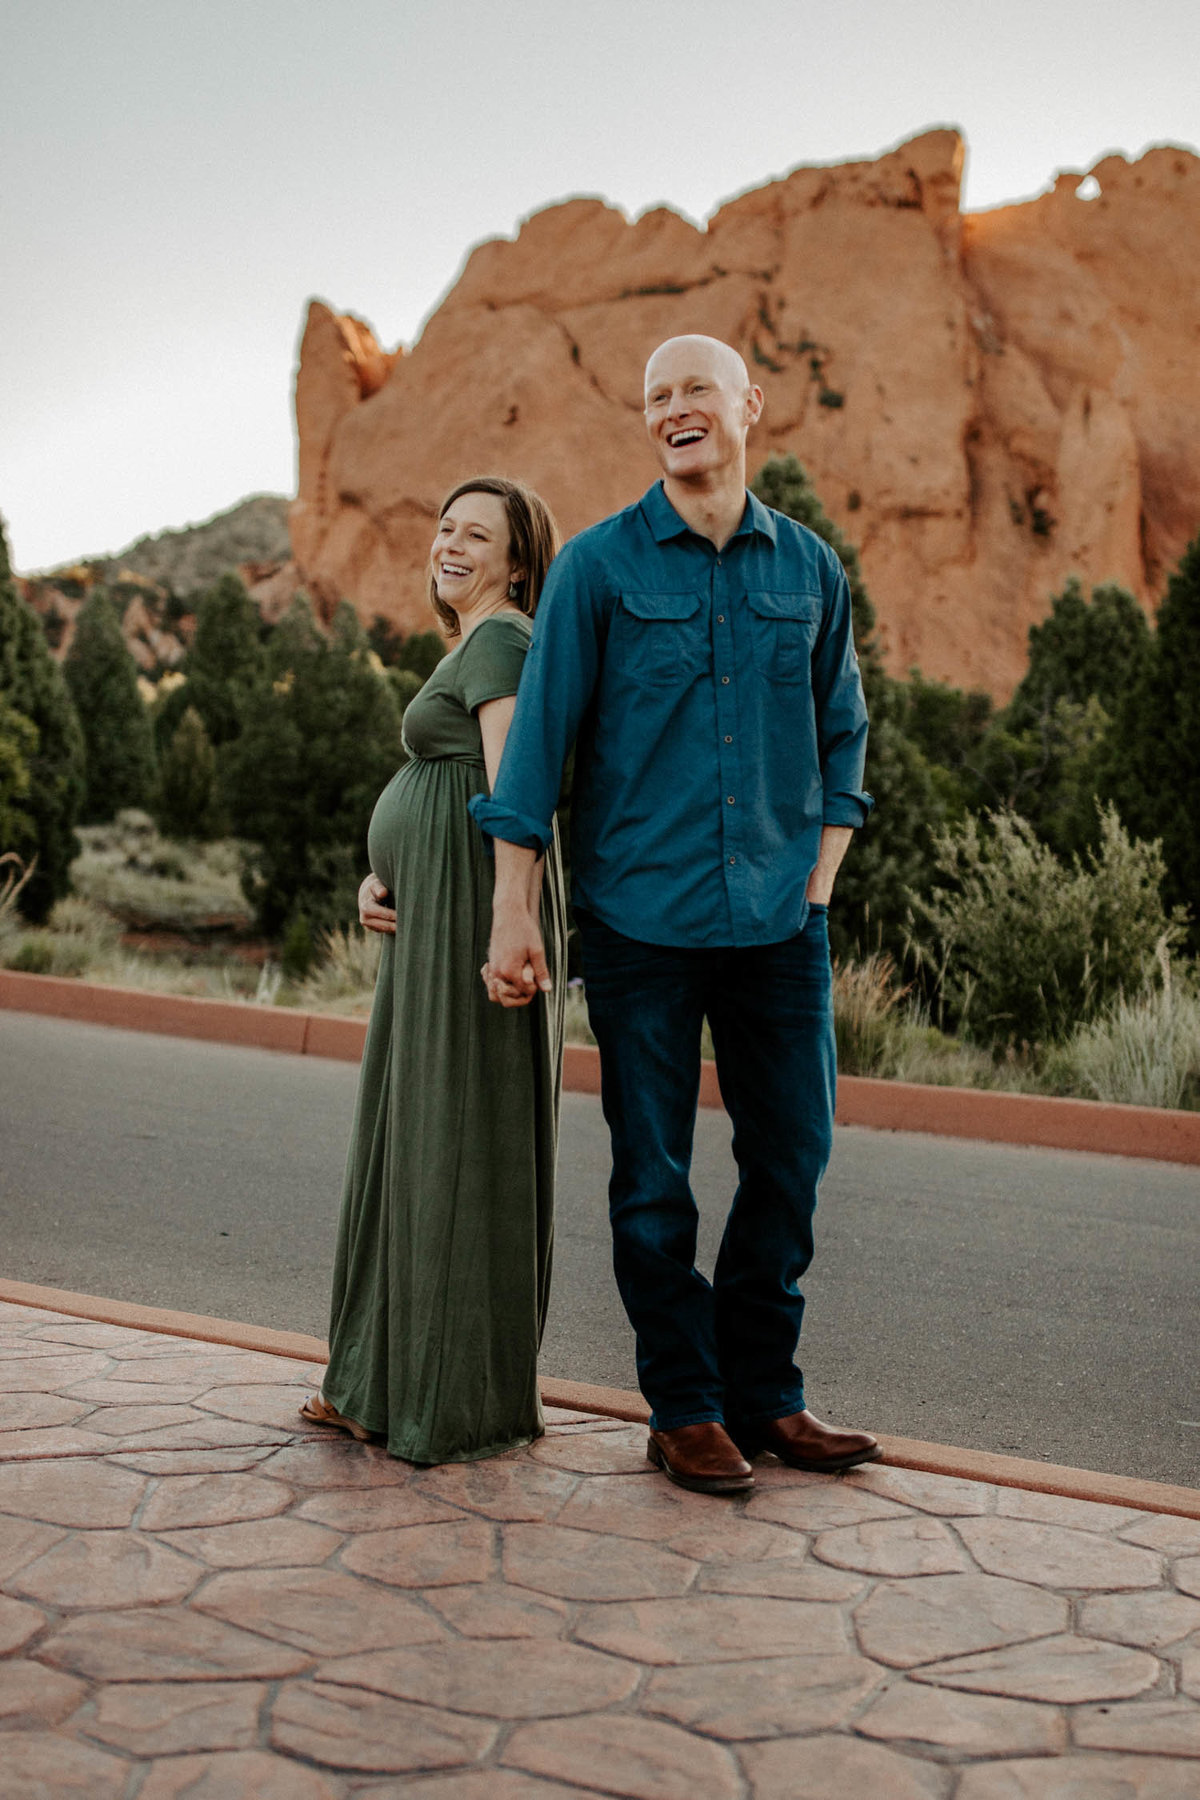 colorado-springs-garden-of-the-gods-sunrise-couples-adventure-session-colorado-elopement-photographer-17